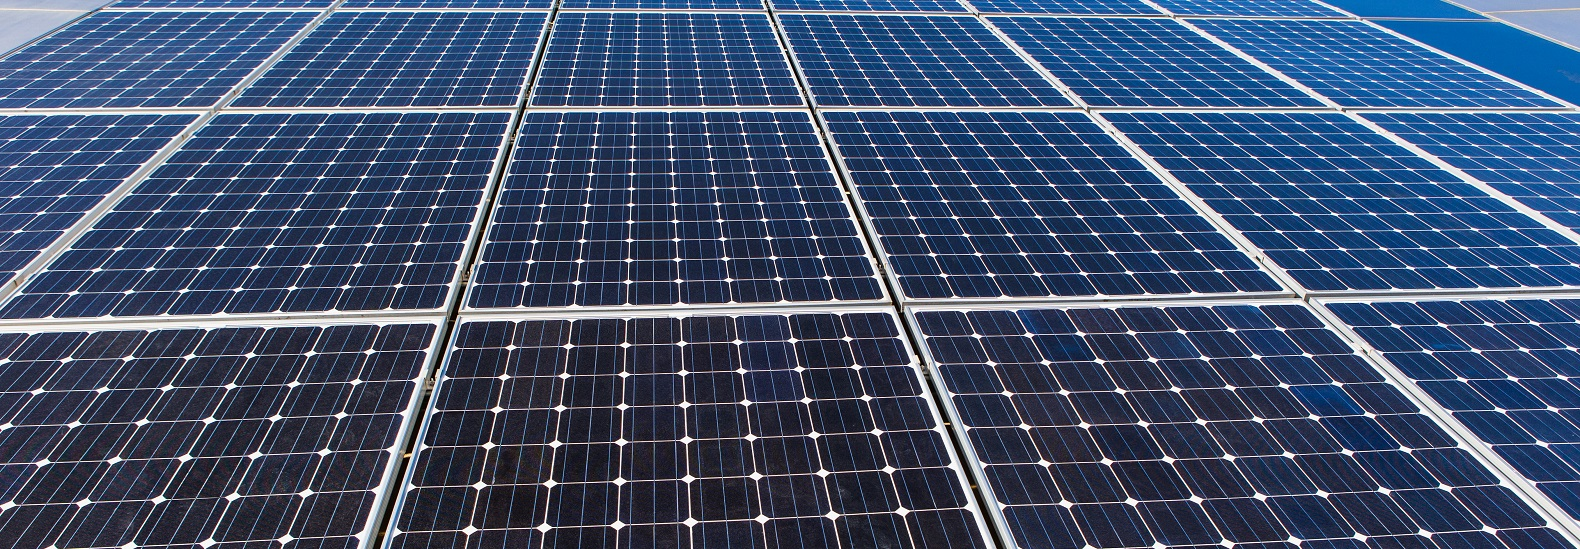 Waste Crisis Looms As Thousands Of Solar Panels Reach End